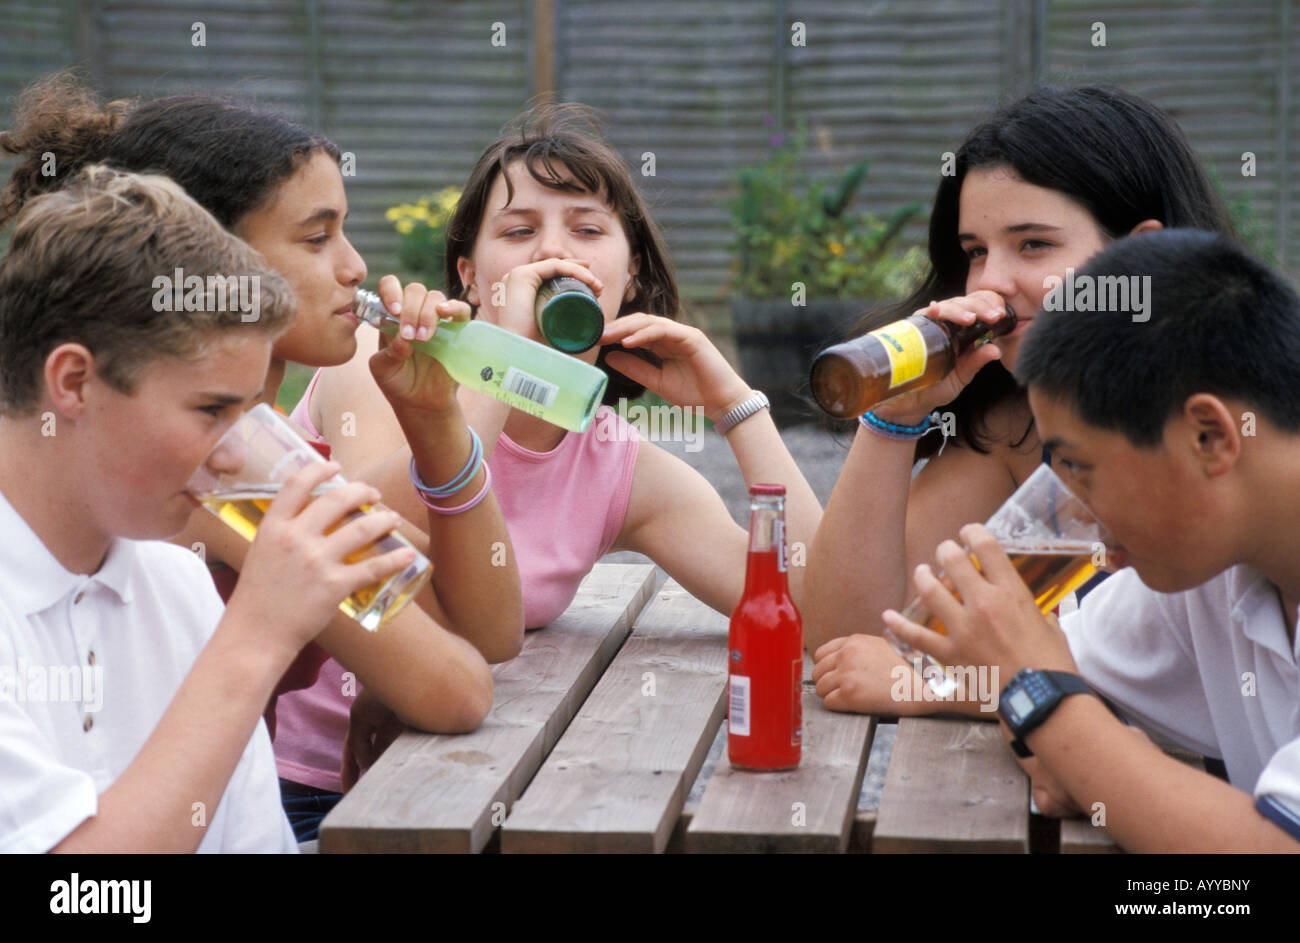 teenage boys and girls at garden table drinking alcohol - Stock Image